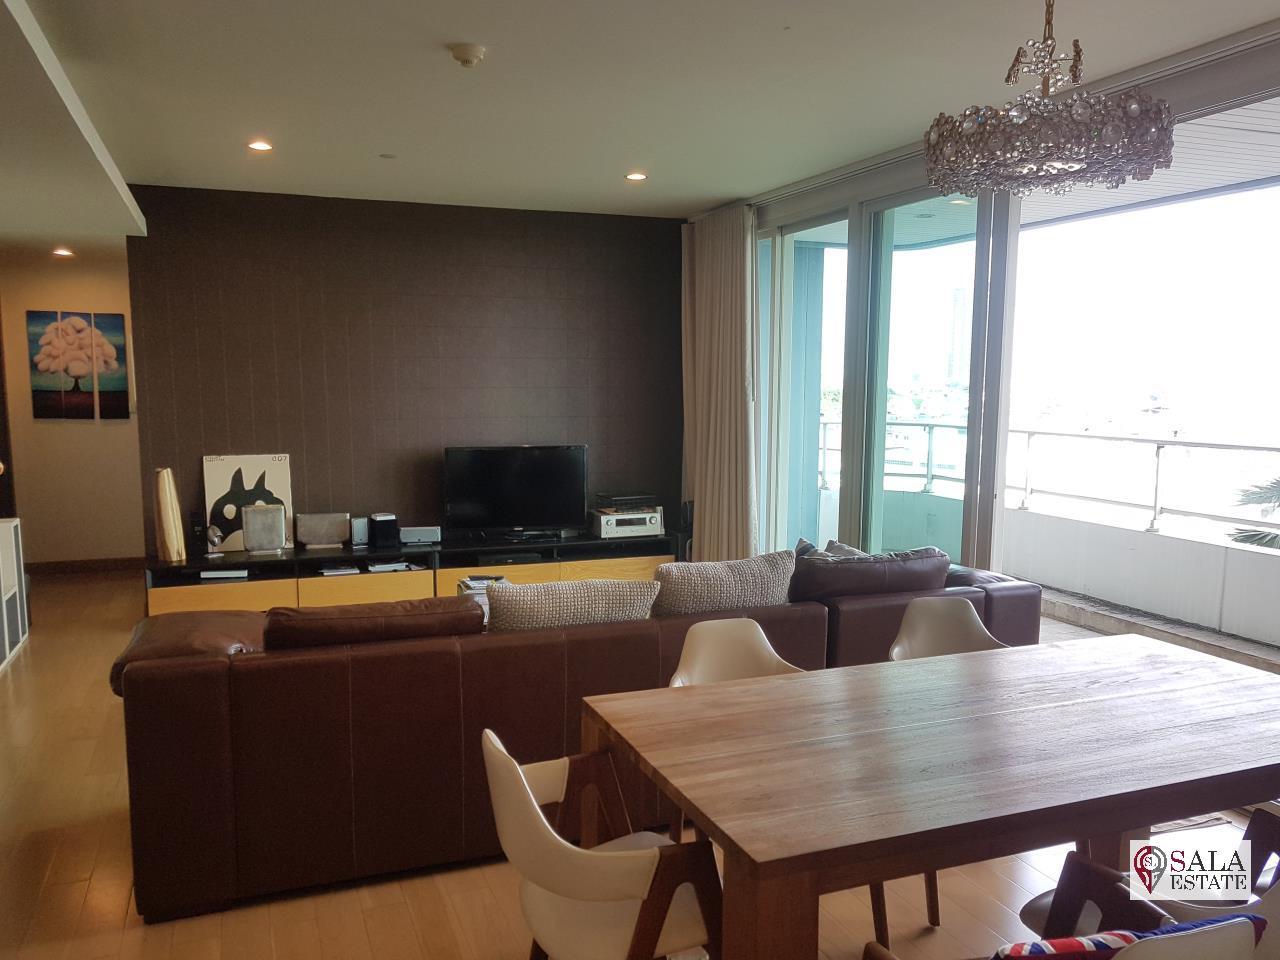 SALA ESTATE Agency's WATERMARK CHAOPHRAYA RIVER – RIVERSIDE-NEAR ICON SIAM,豪华公寓,河景房, 3卧3卫,家具齐全 1